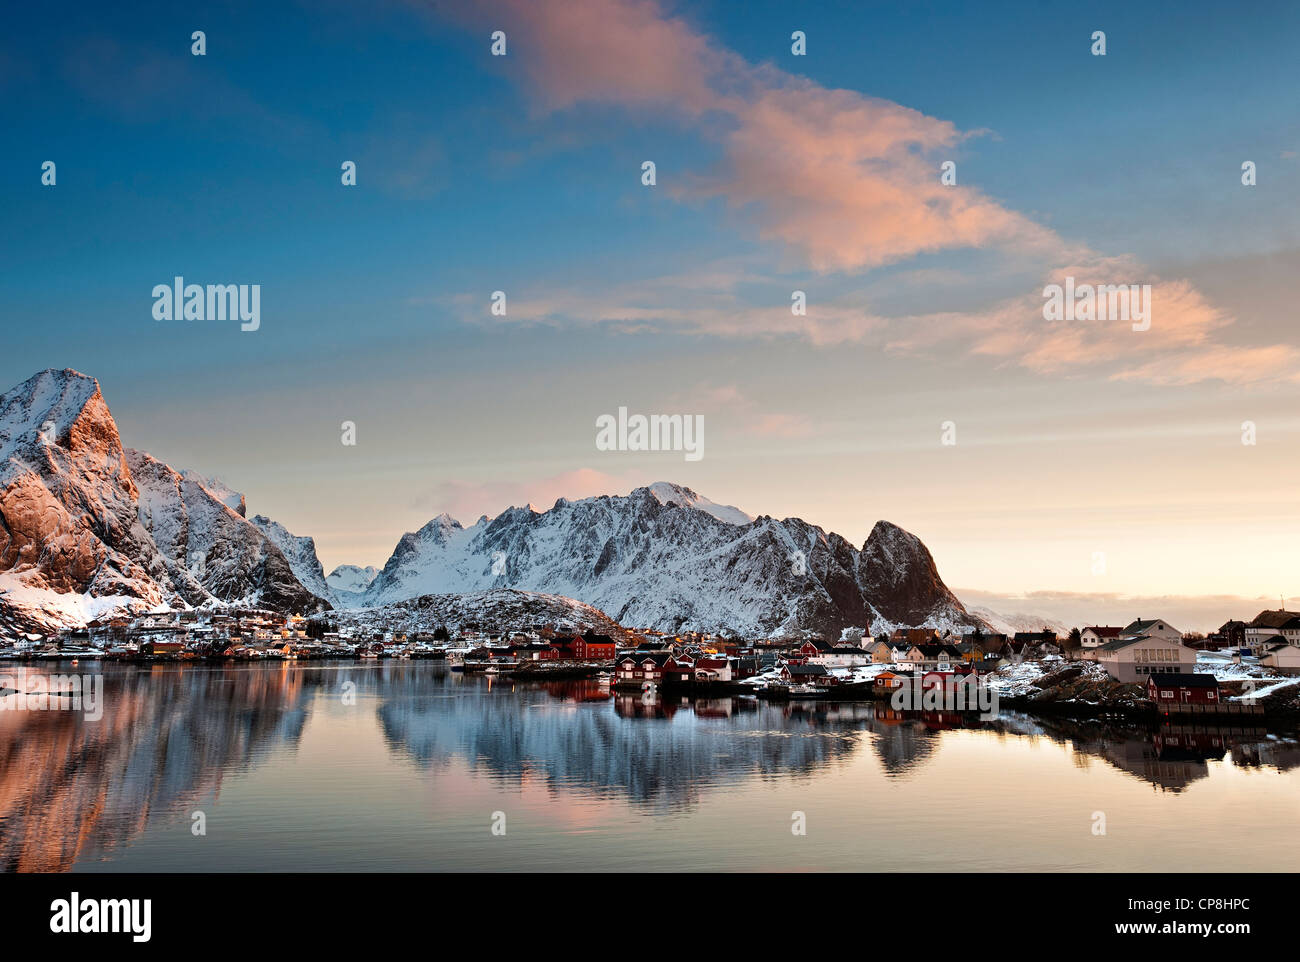 Sunrise over Olstind with Reine village in the foreground Stock Photo